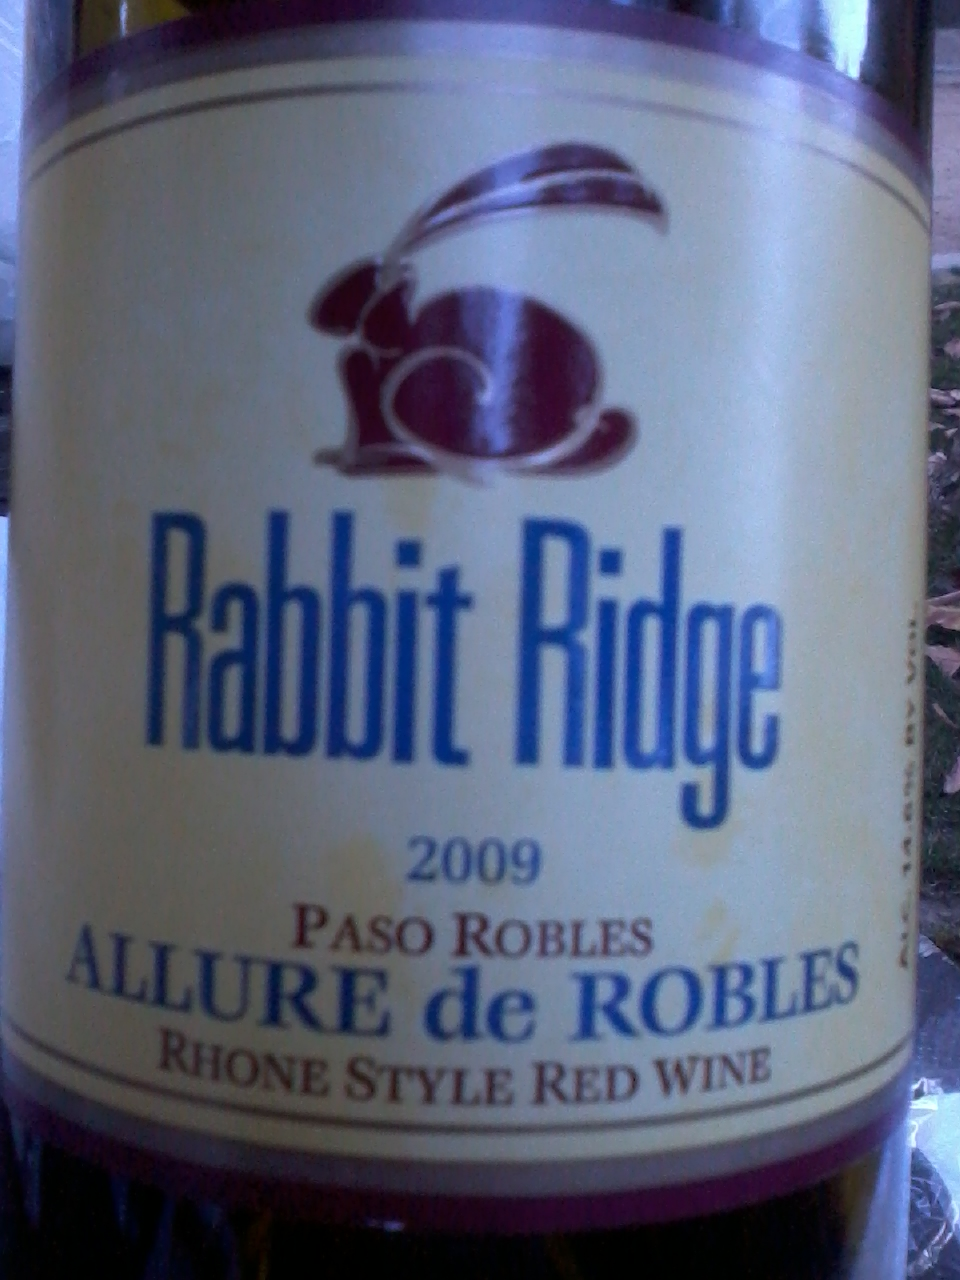 Picnic Wines - 2009 Rabbit Ridge Rhone Style Red Wine - Barrysentials ...